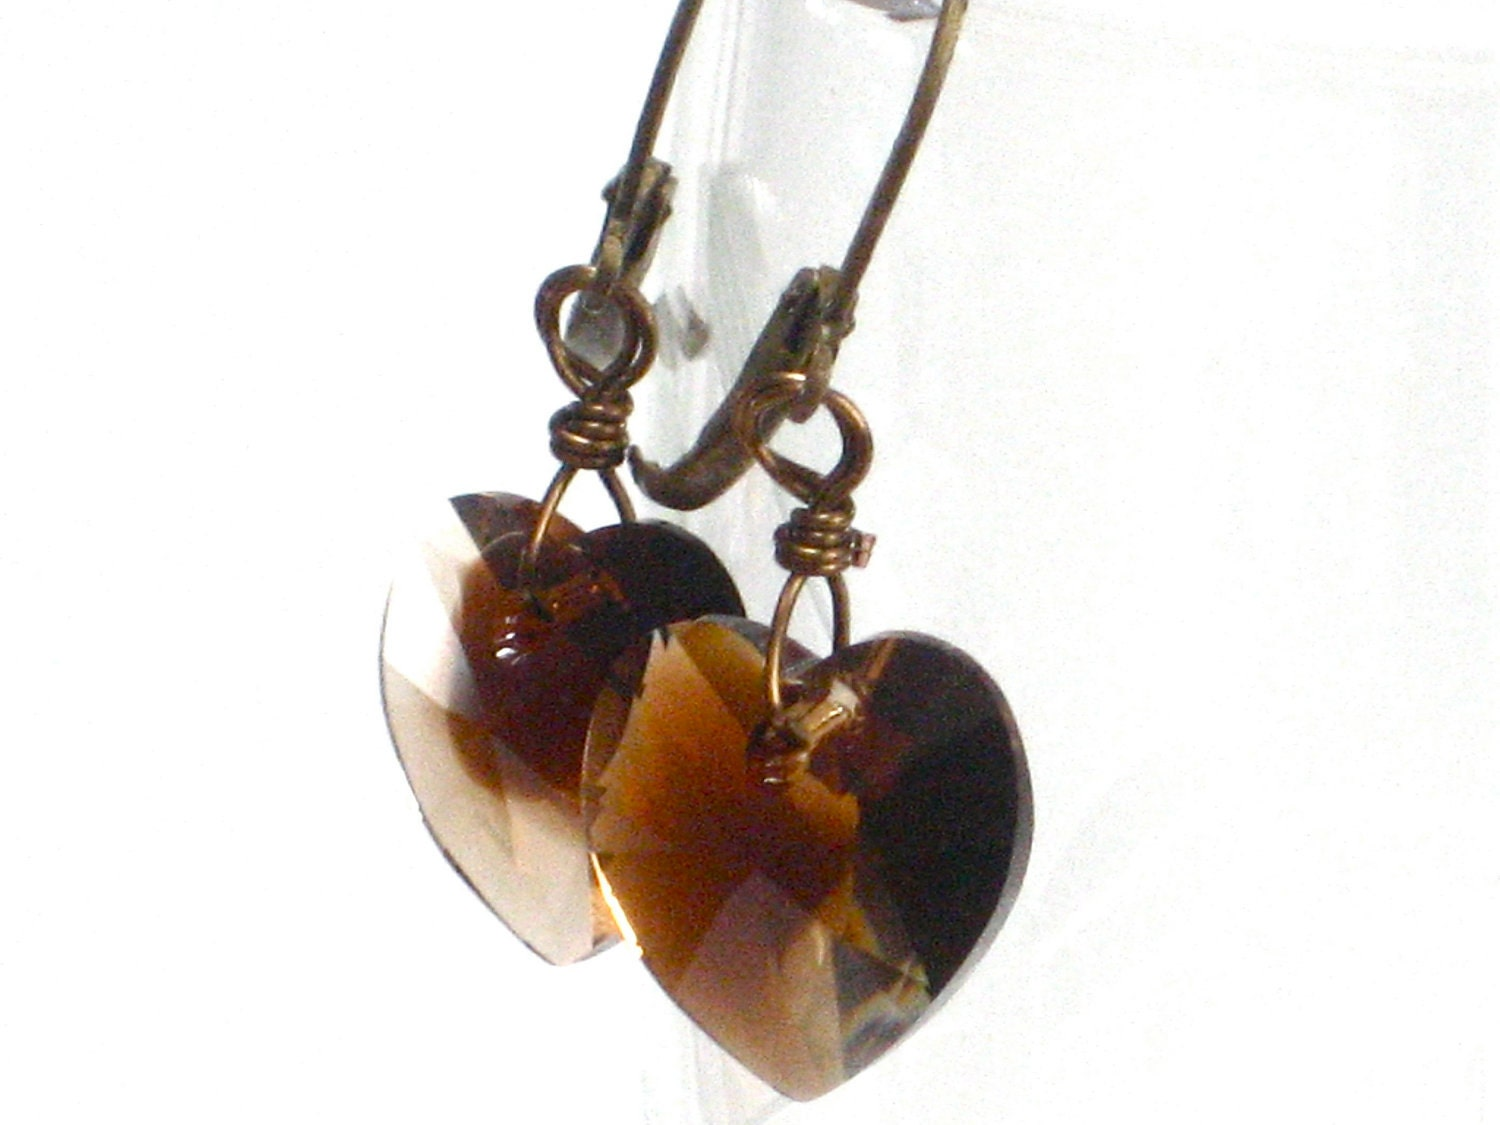 Brown Earrings, Heart Earrings Swarovski Crystal Hearts Antiqued Brass Dangle Fall Fashion - Coffee Love - CCARIA